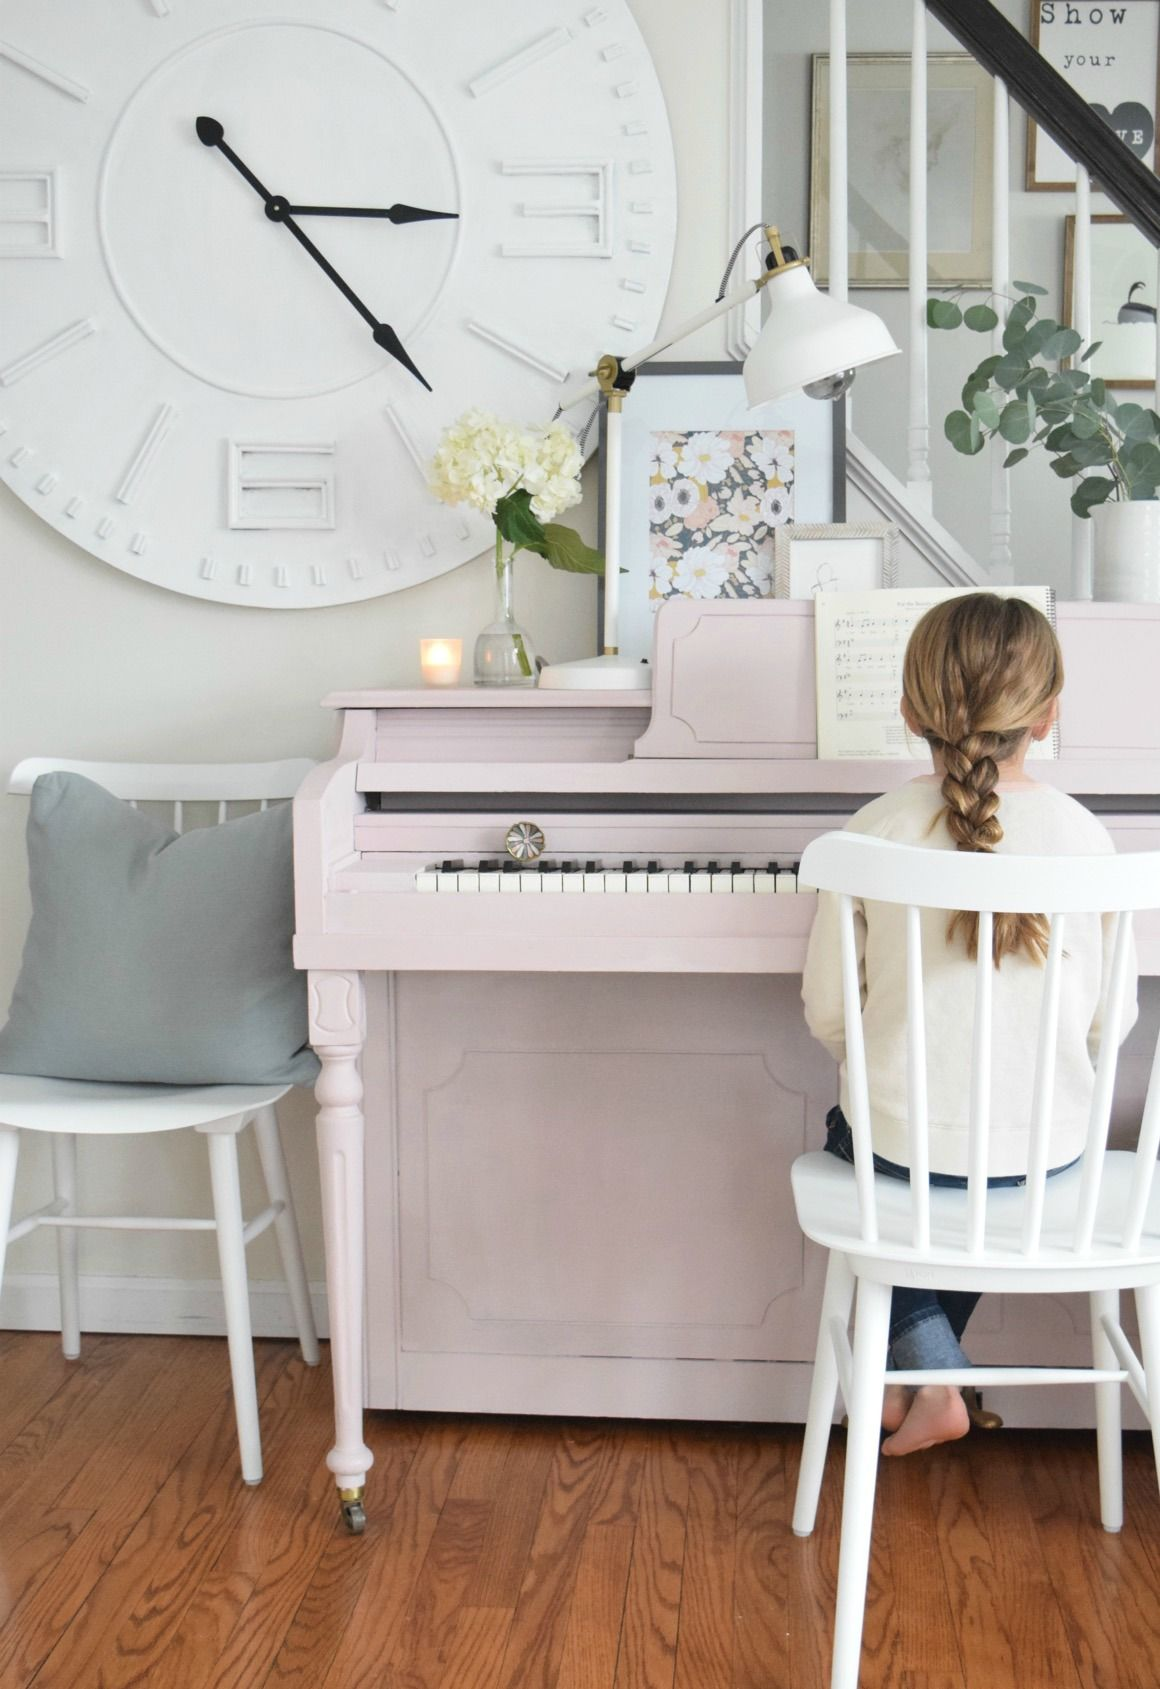 Spring Home Tour in our Cape 2017 is part of Small Living Room With Piano - Spring home decor changes and ideas with a group of 25 bloggers  Easy updates and inexpensive ideas for spring from wallpaper to cut branches